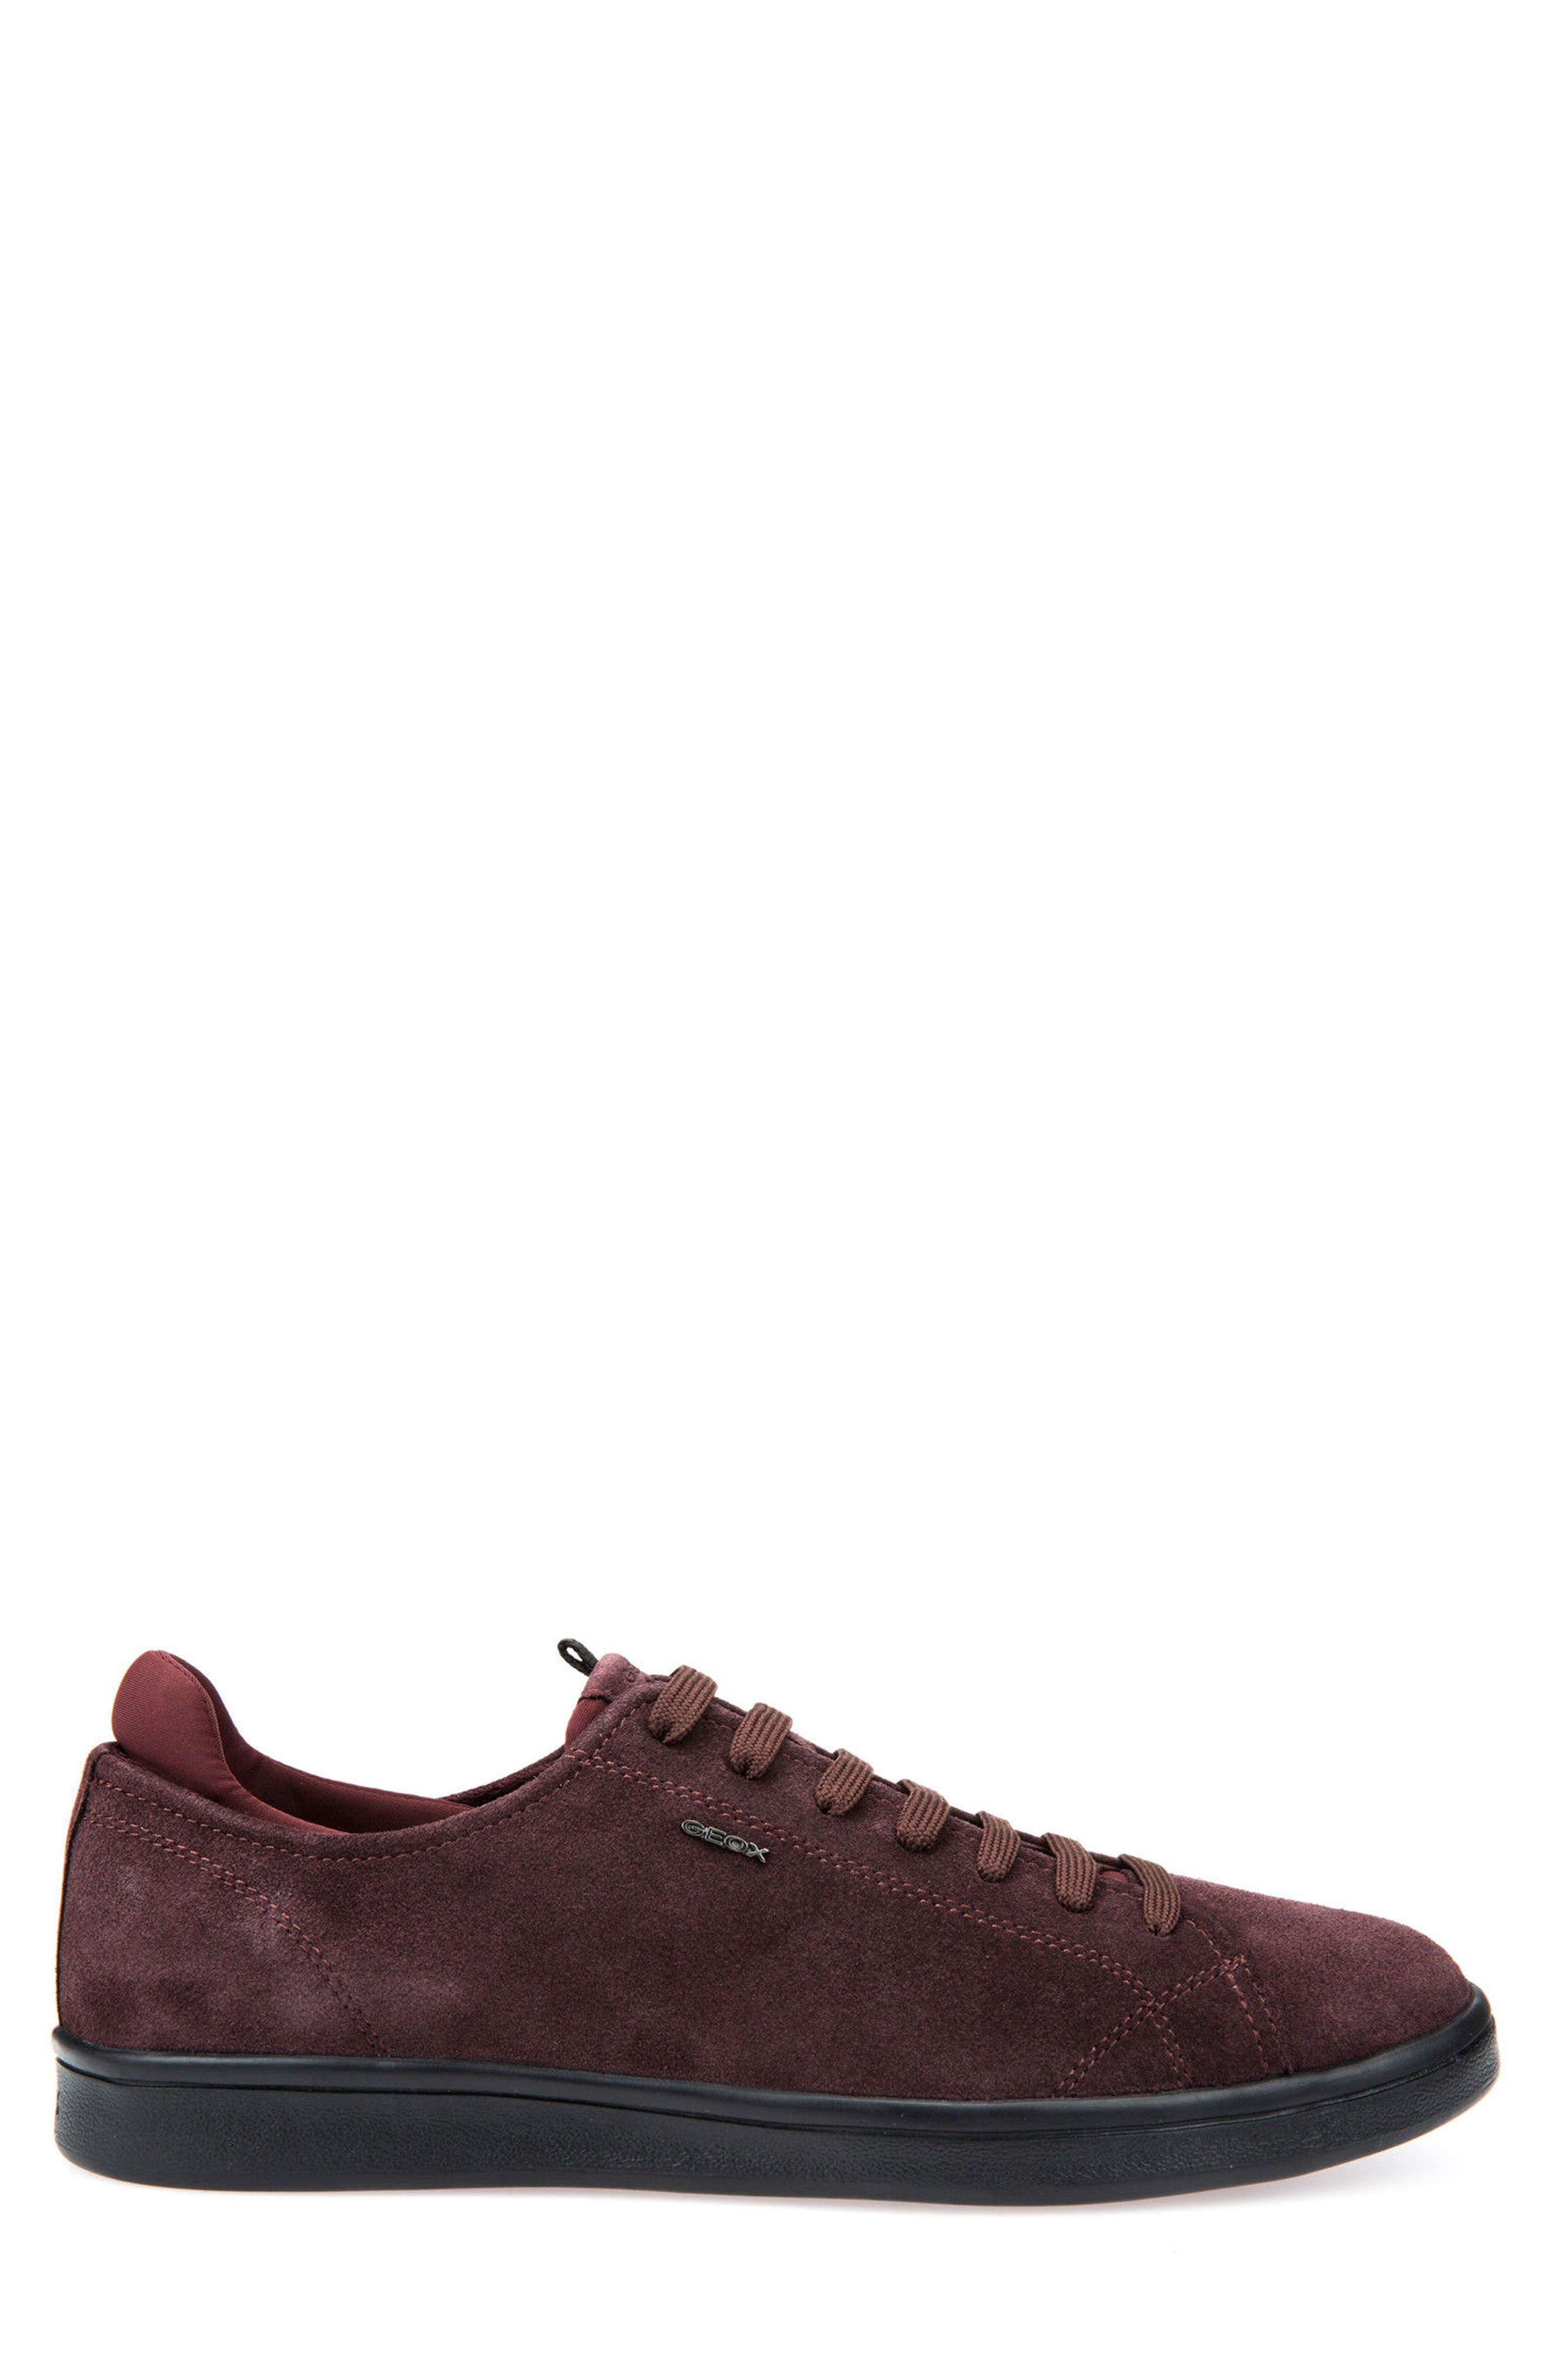 Warrens 8 Low-Top Sneaker,                             Alternate thumbnail 3, color,                             Bordeaux